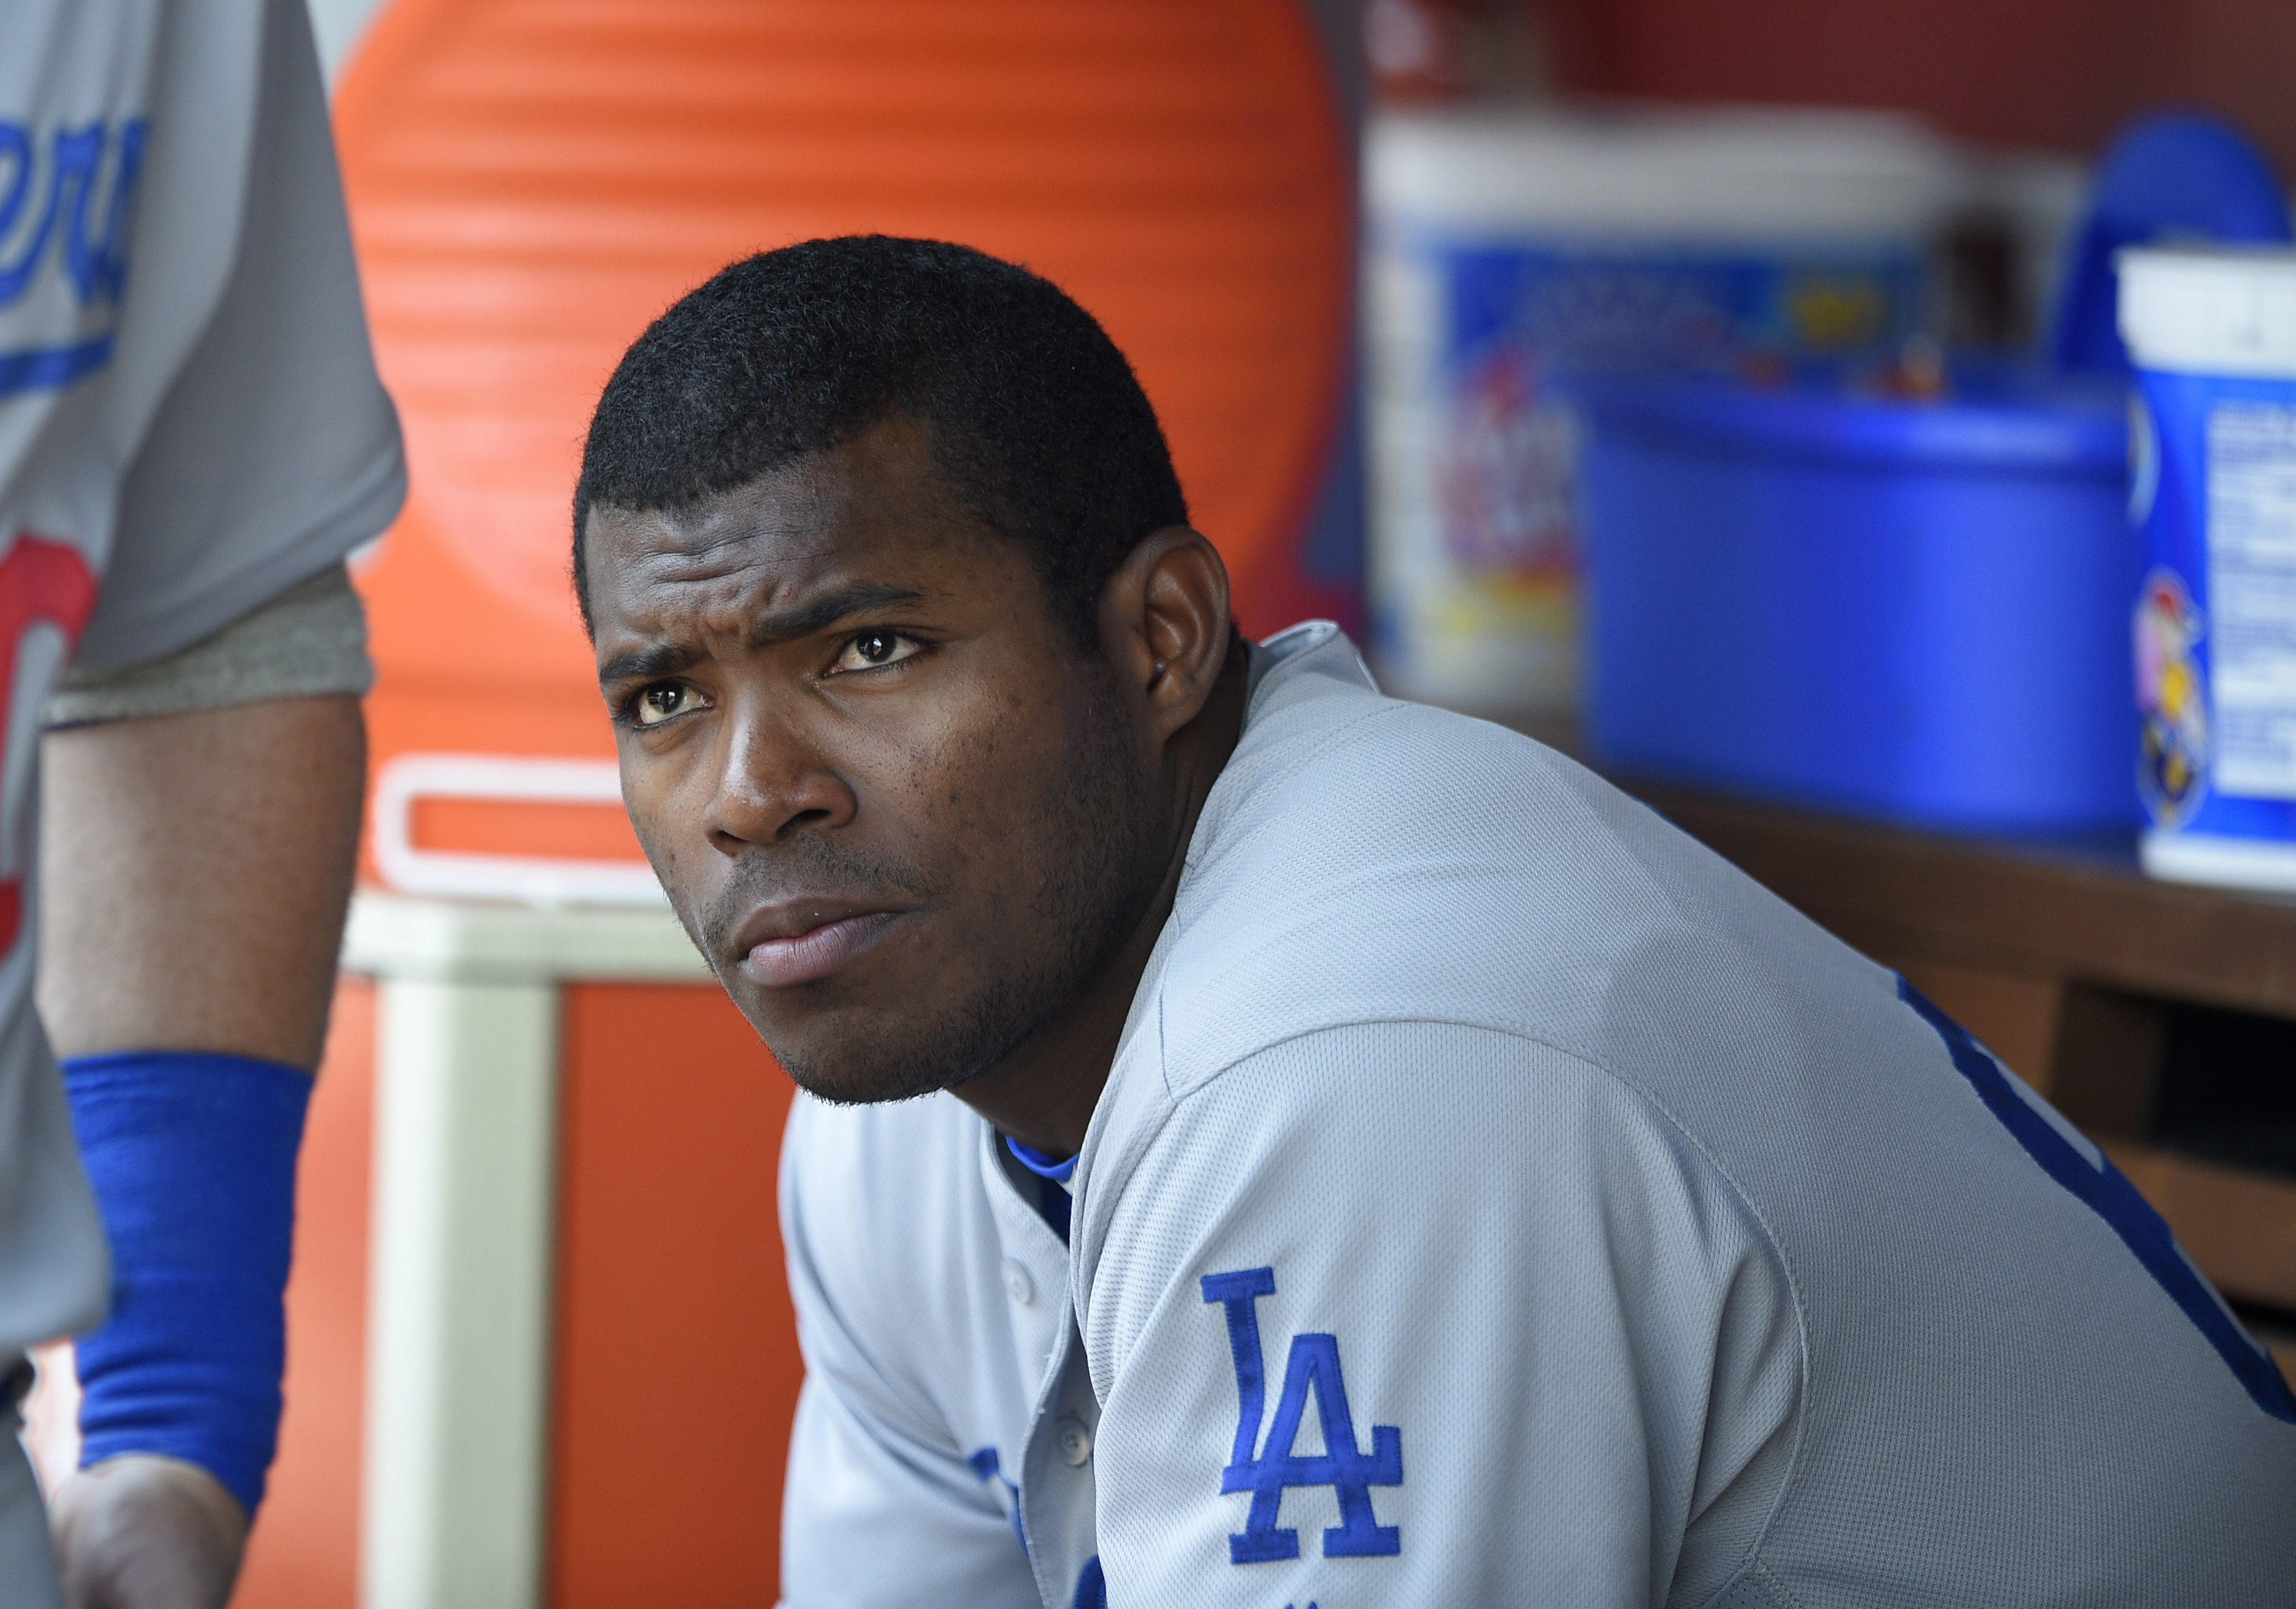 FILE - This July 21, 2016 file photo shows Los Angeles Dodgers' Yasiel Puig looking on from the dugout during a baseball game against the Washington Nationals in Washington. Puig's agent said Monday, Aug. 1, 2016 the Los Angeles Dodgers slugger expects to